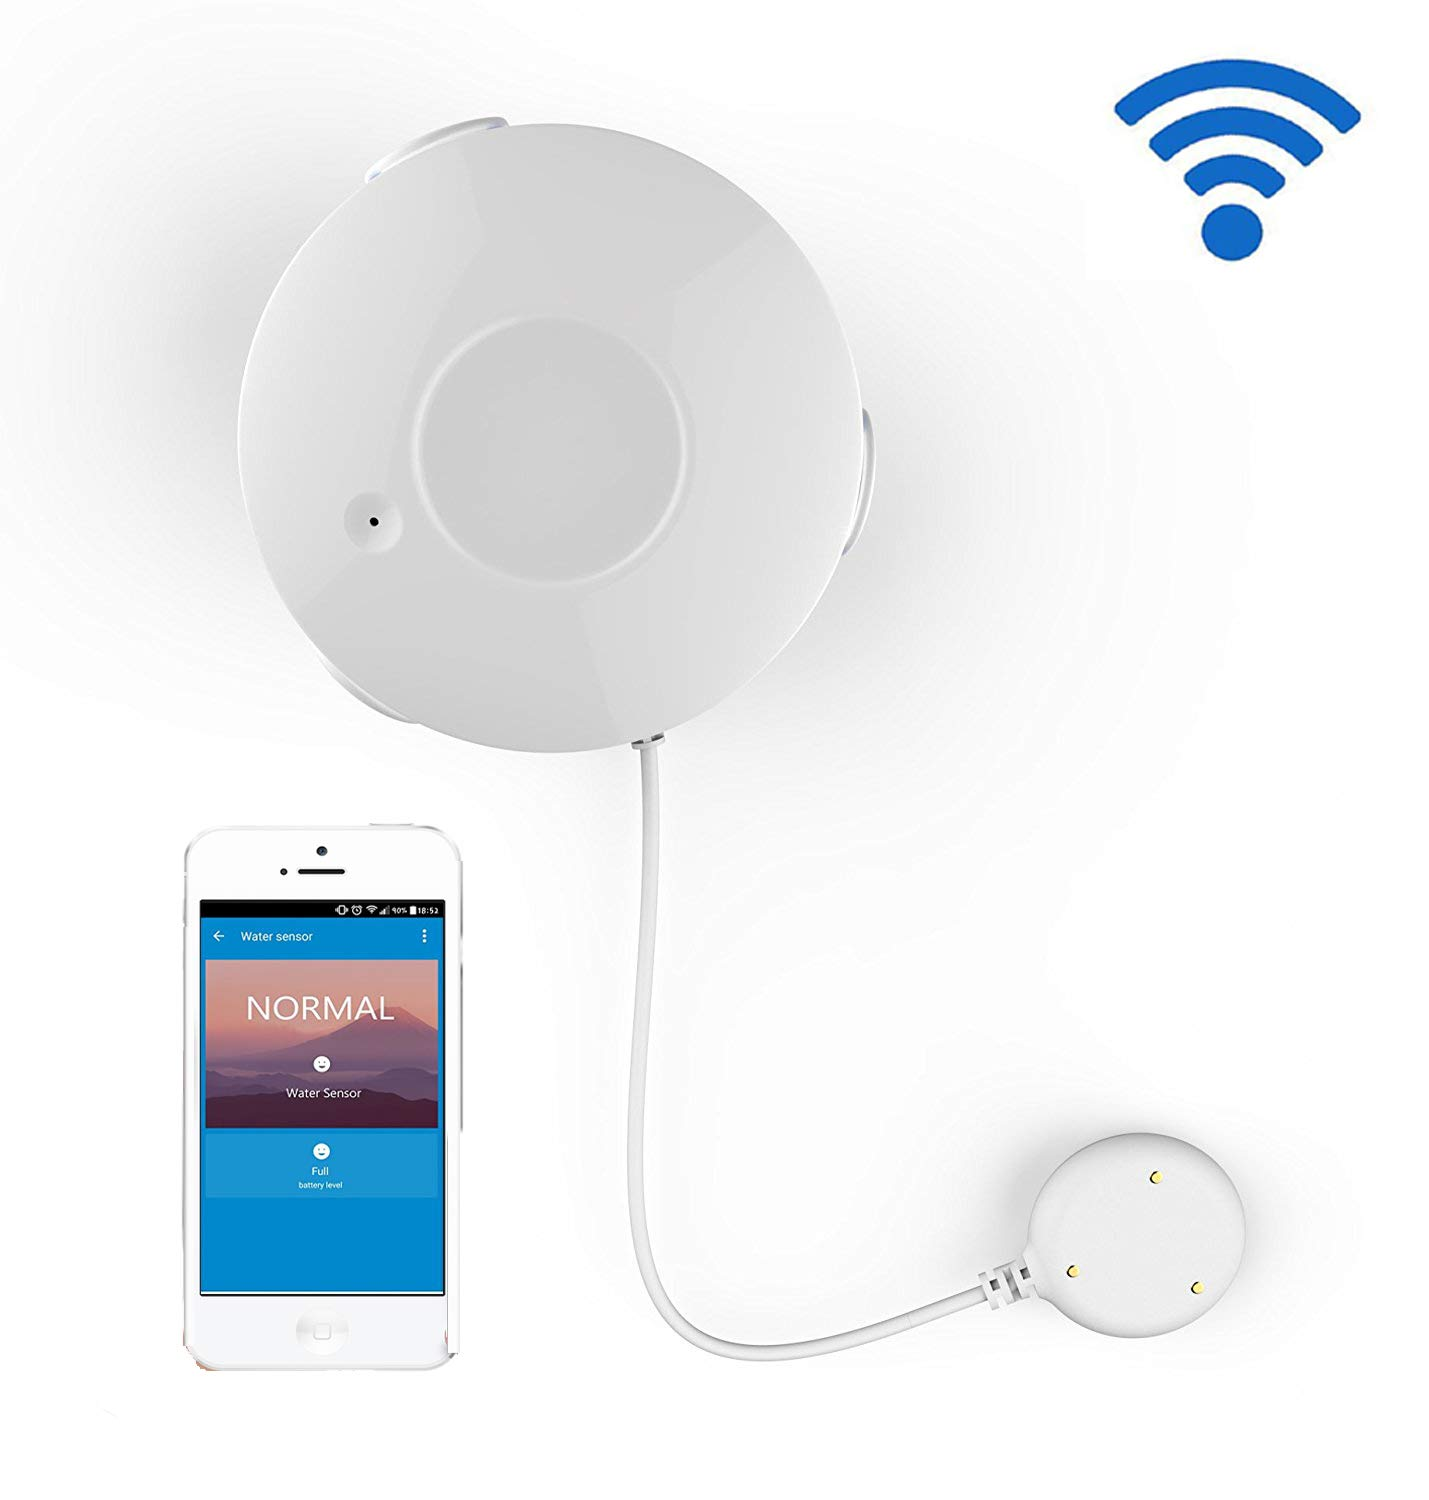 Coolcam Smart Wi-Fi Water Sensor, Flood and Leak Detector Alarm and App Notification Alerts, No Hub Required, Simple Plug & Play Set Up by CoolCam